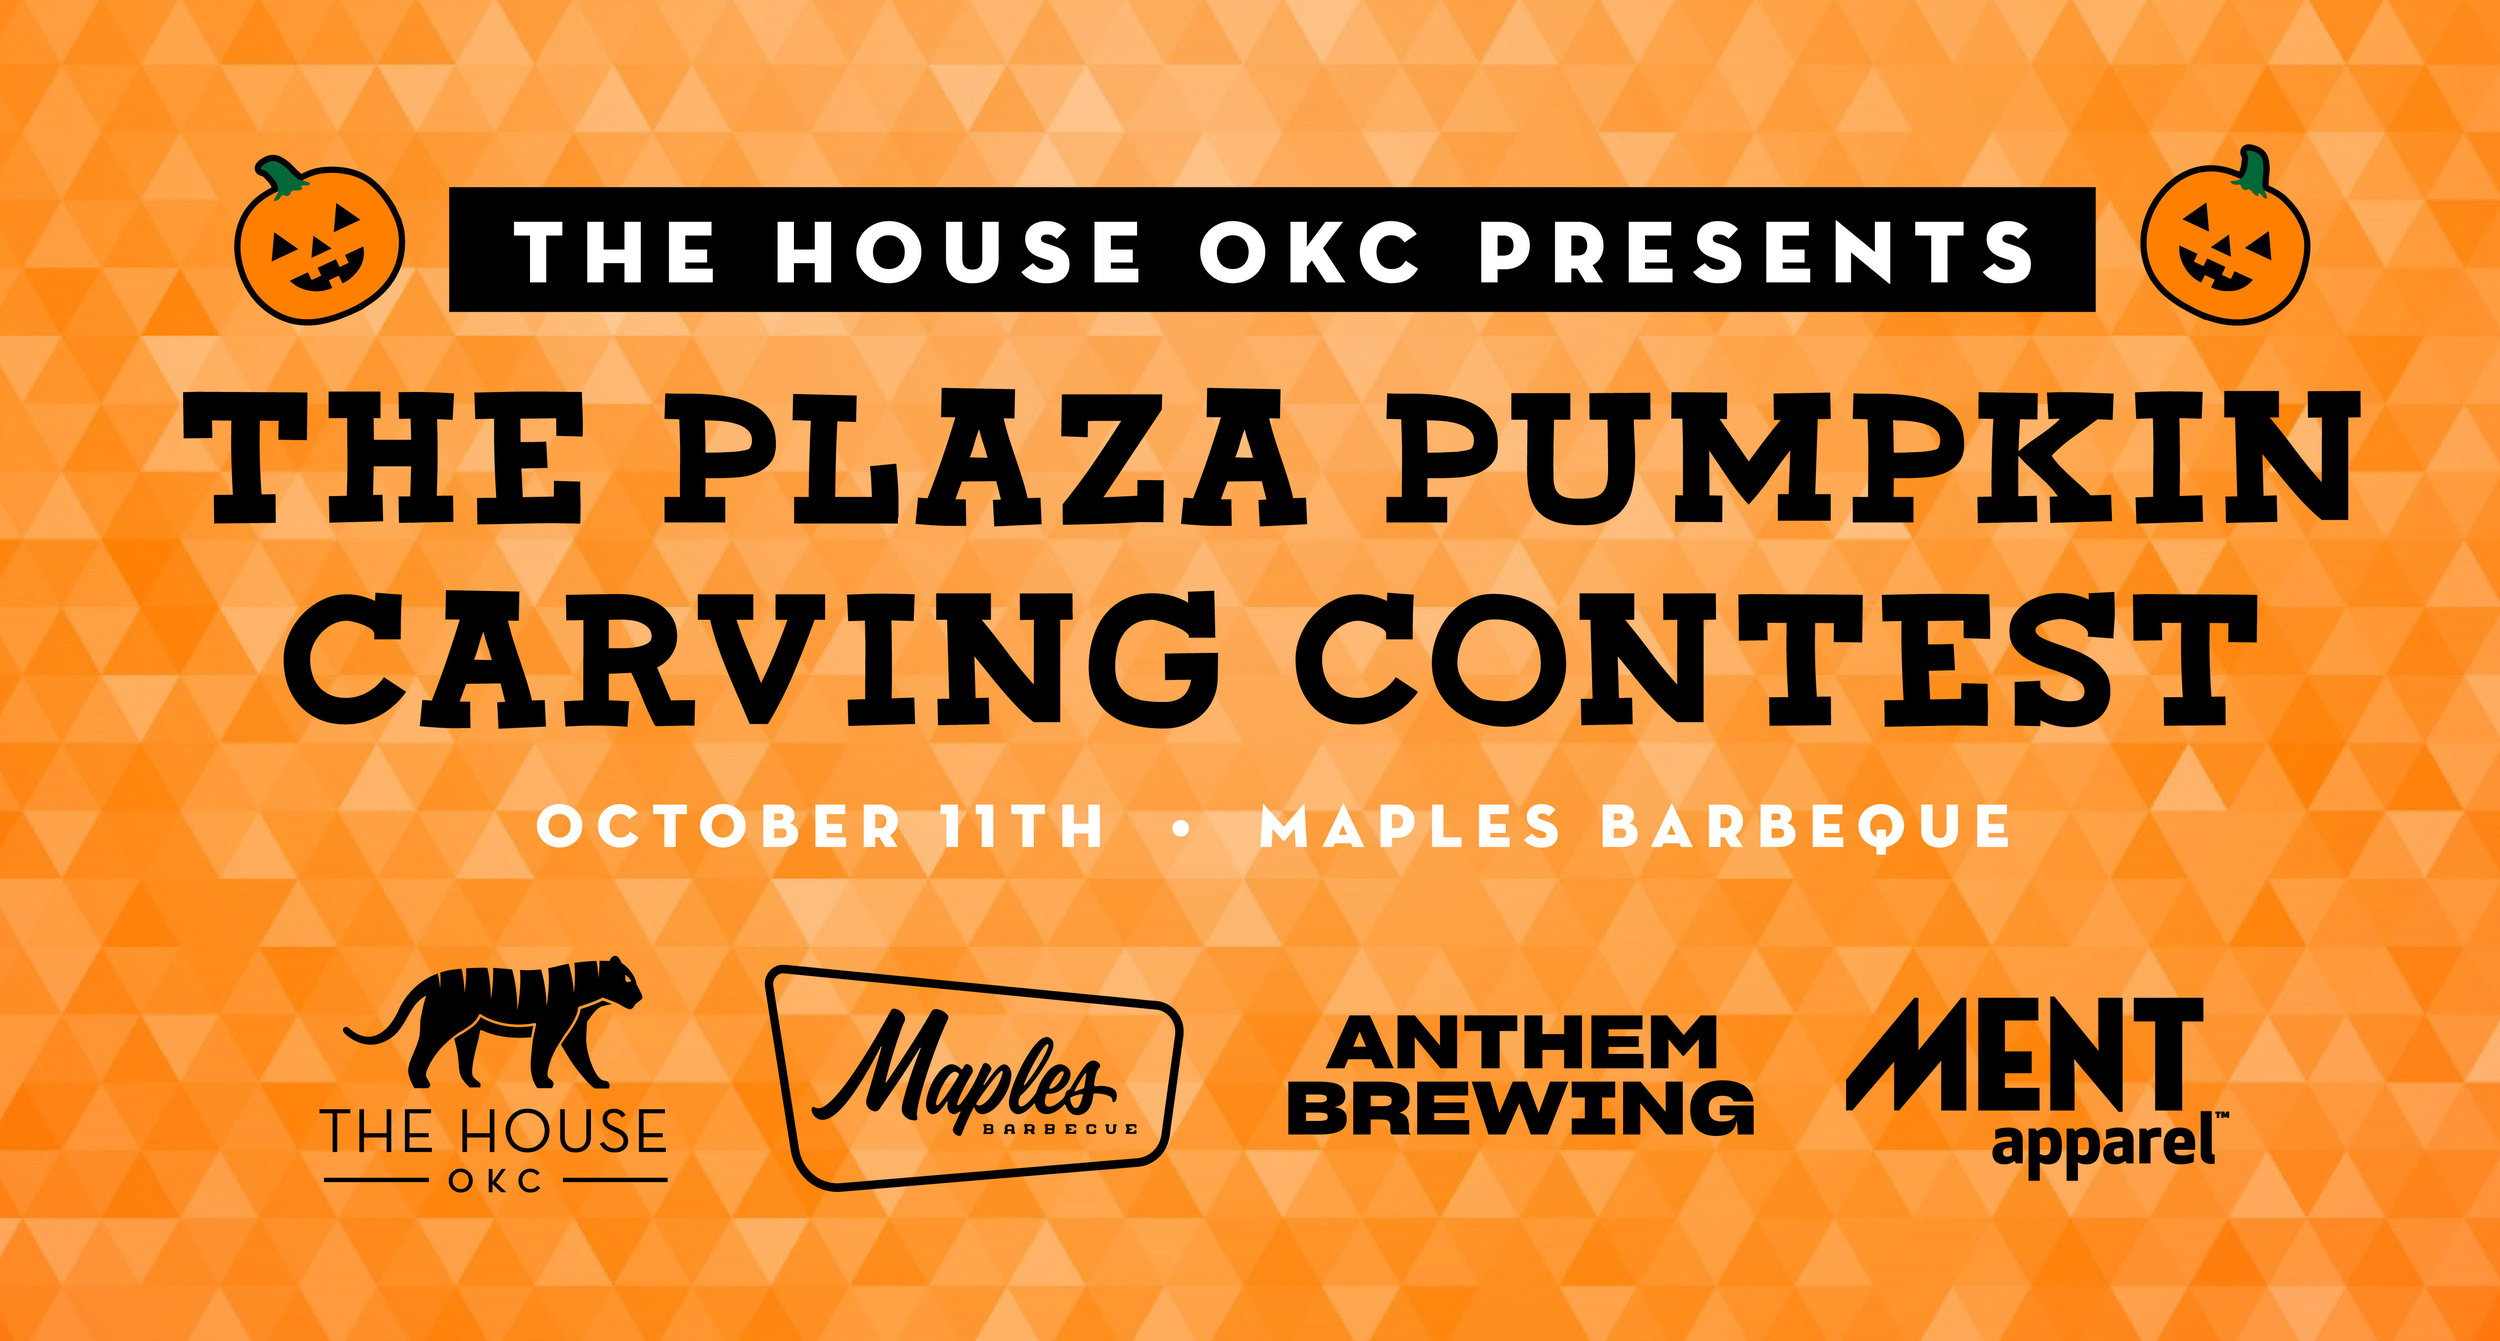 The Plaza Pumpkin Carving Contest 2019 Presented: by The House OKC